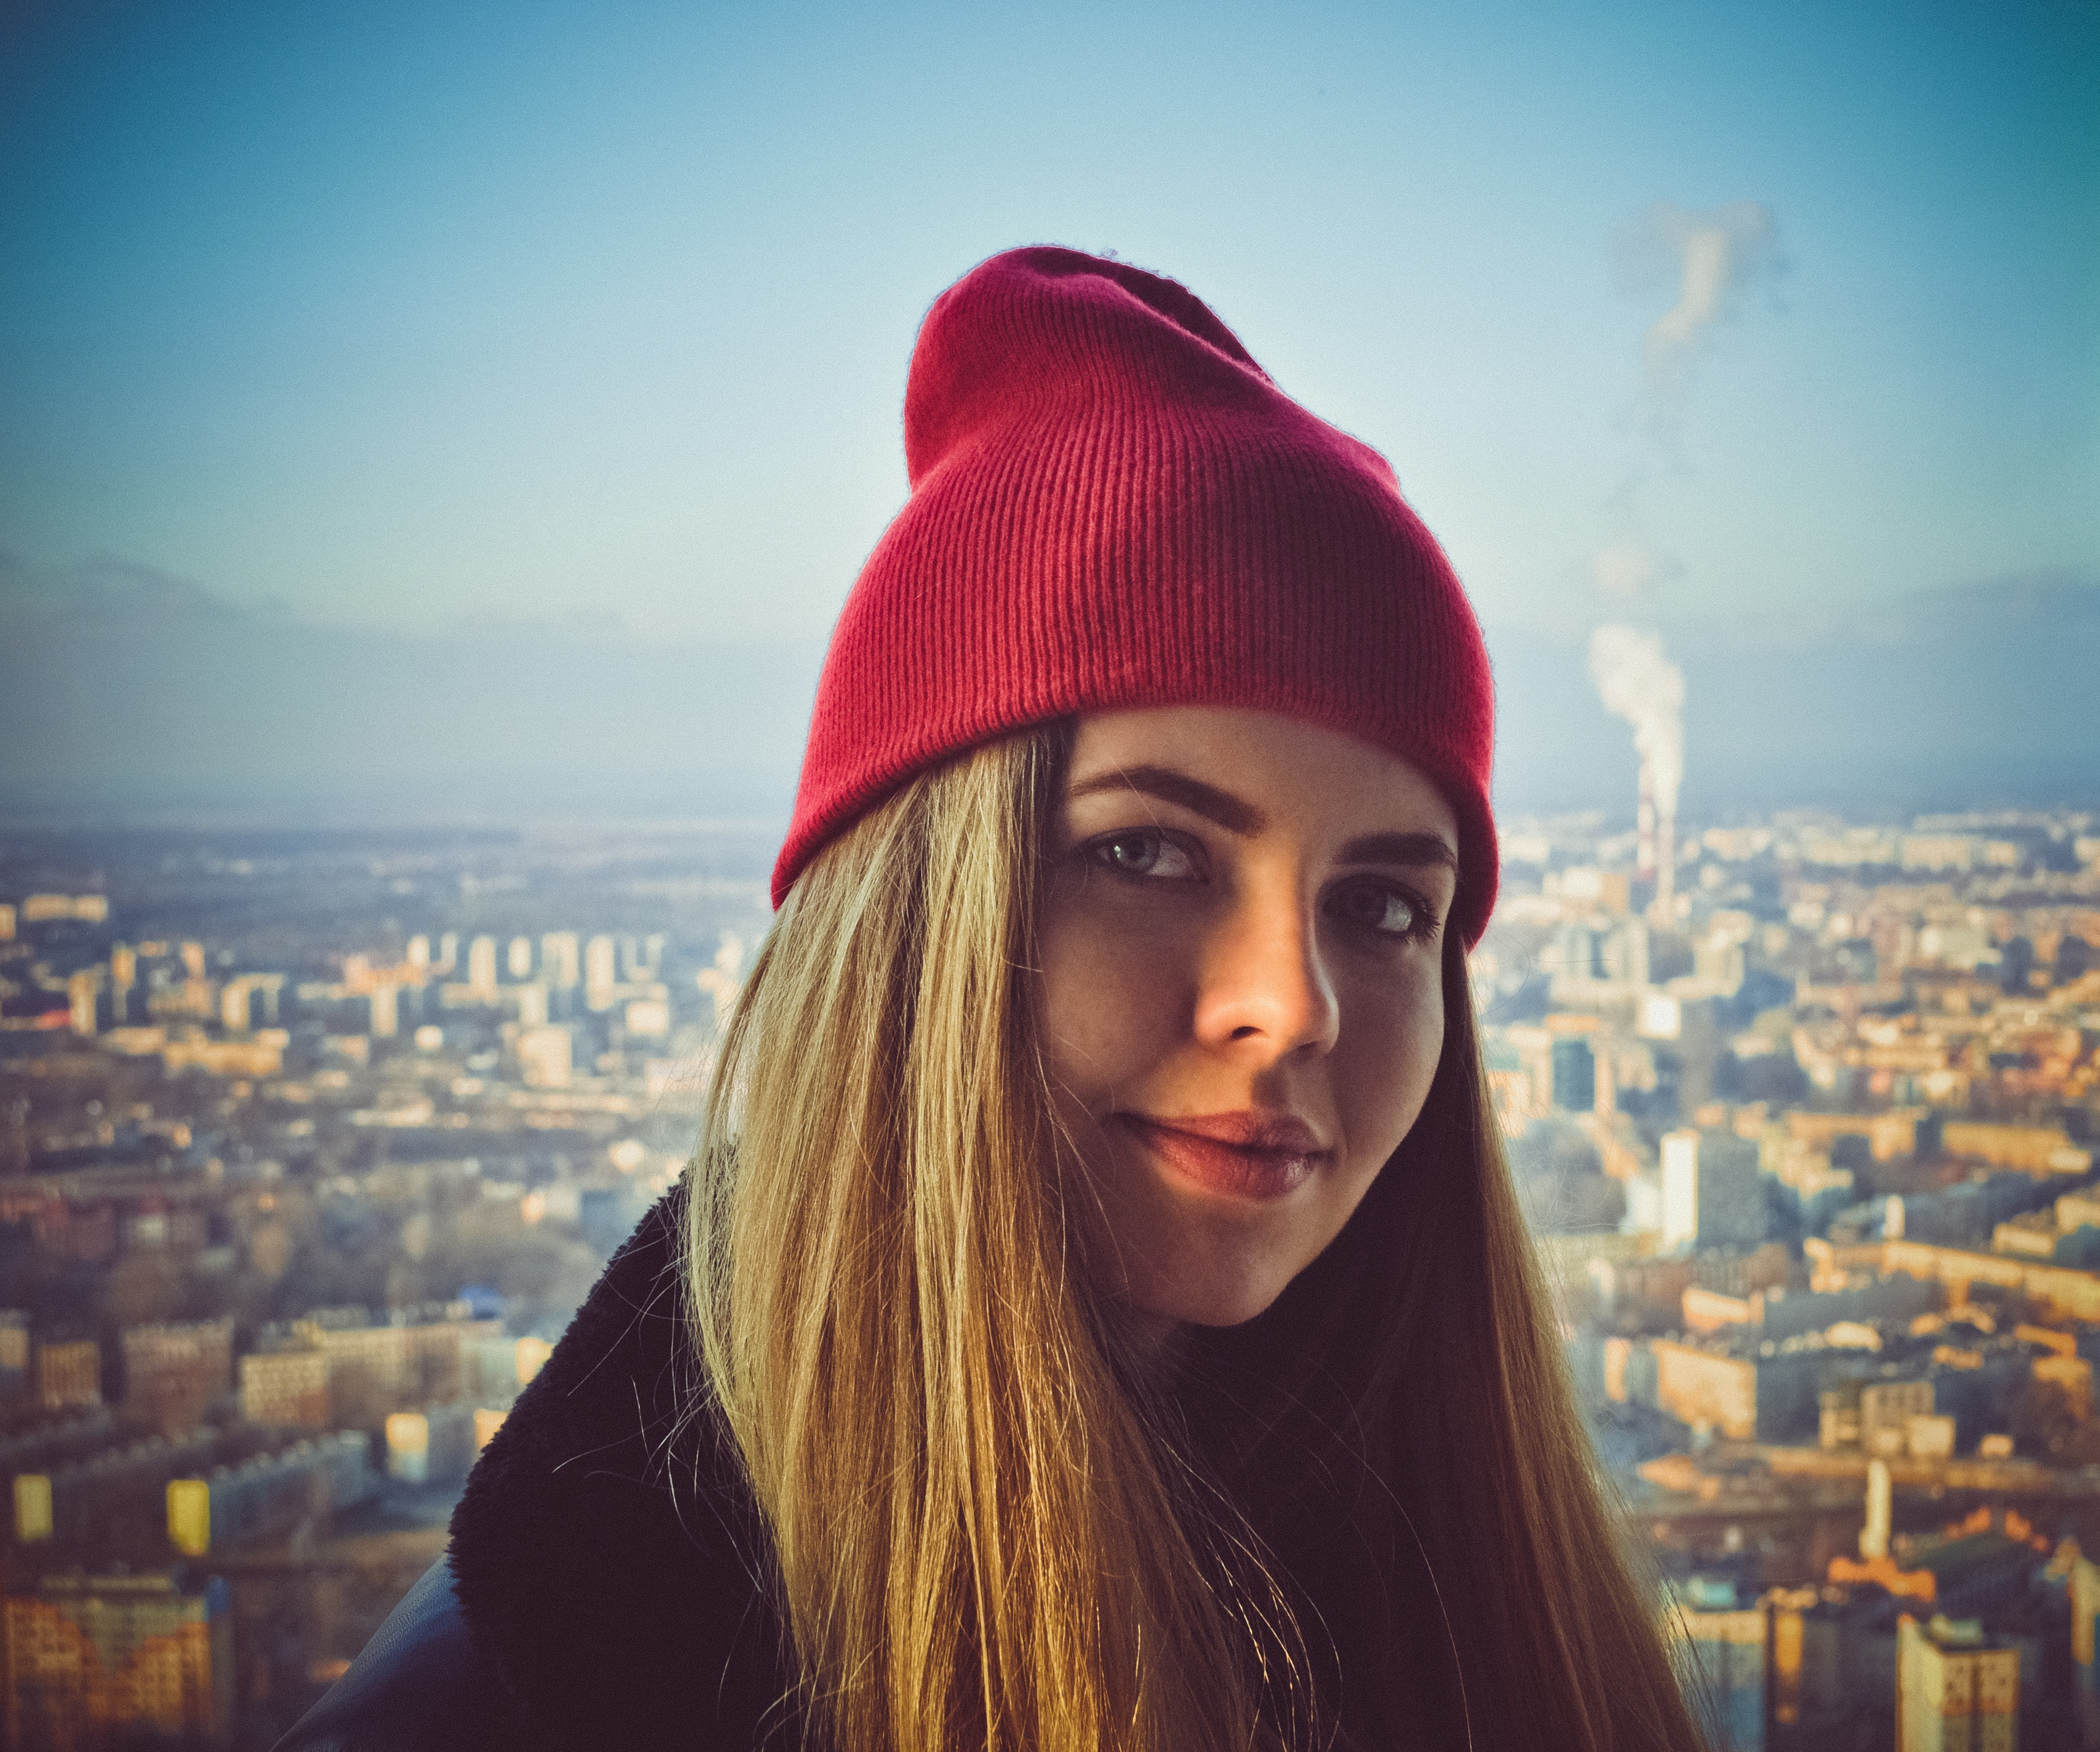 Woman wearing red beanie photo